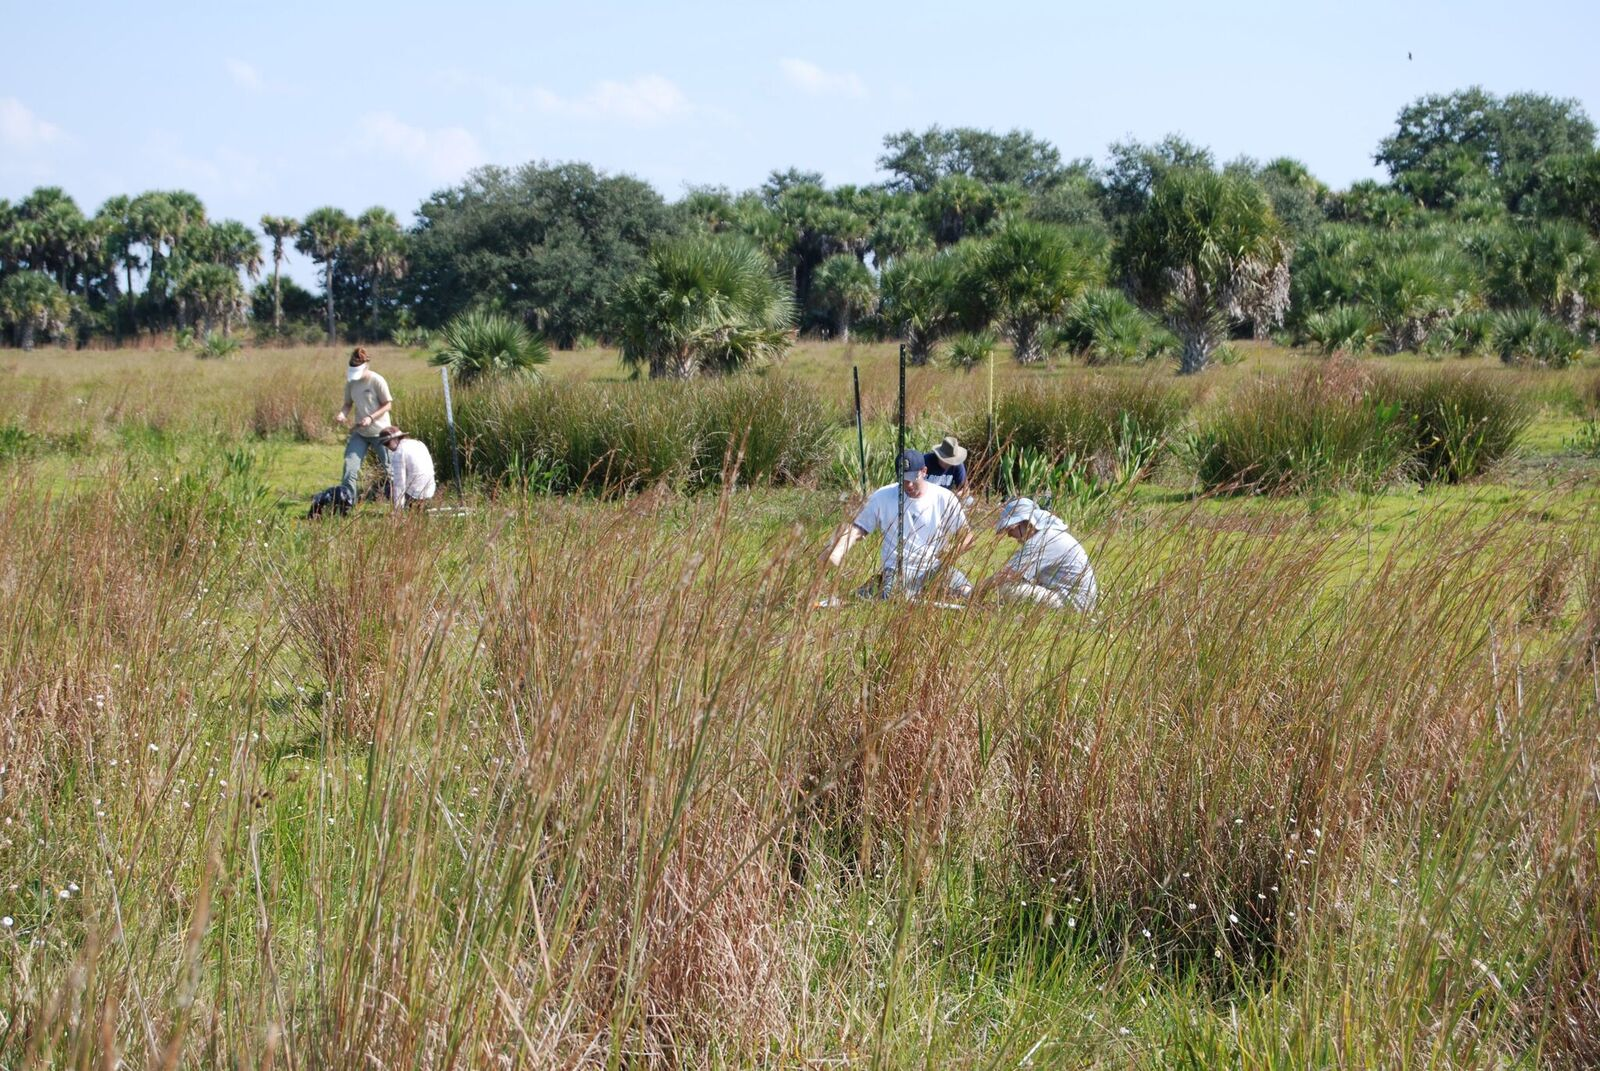 Field Researchers collecting biomass in a wetland